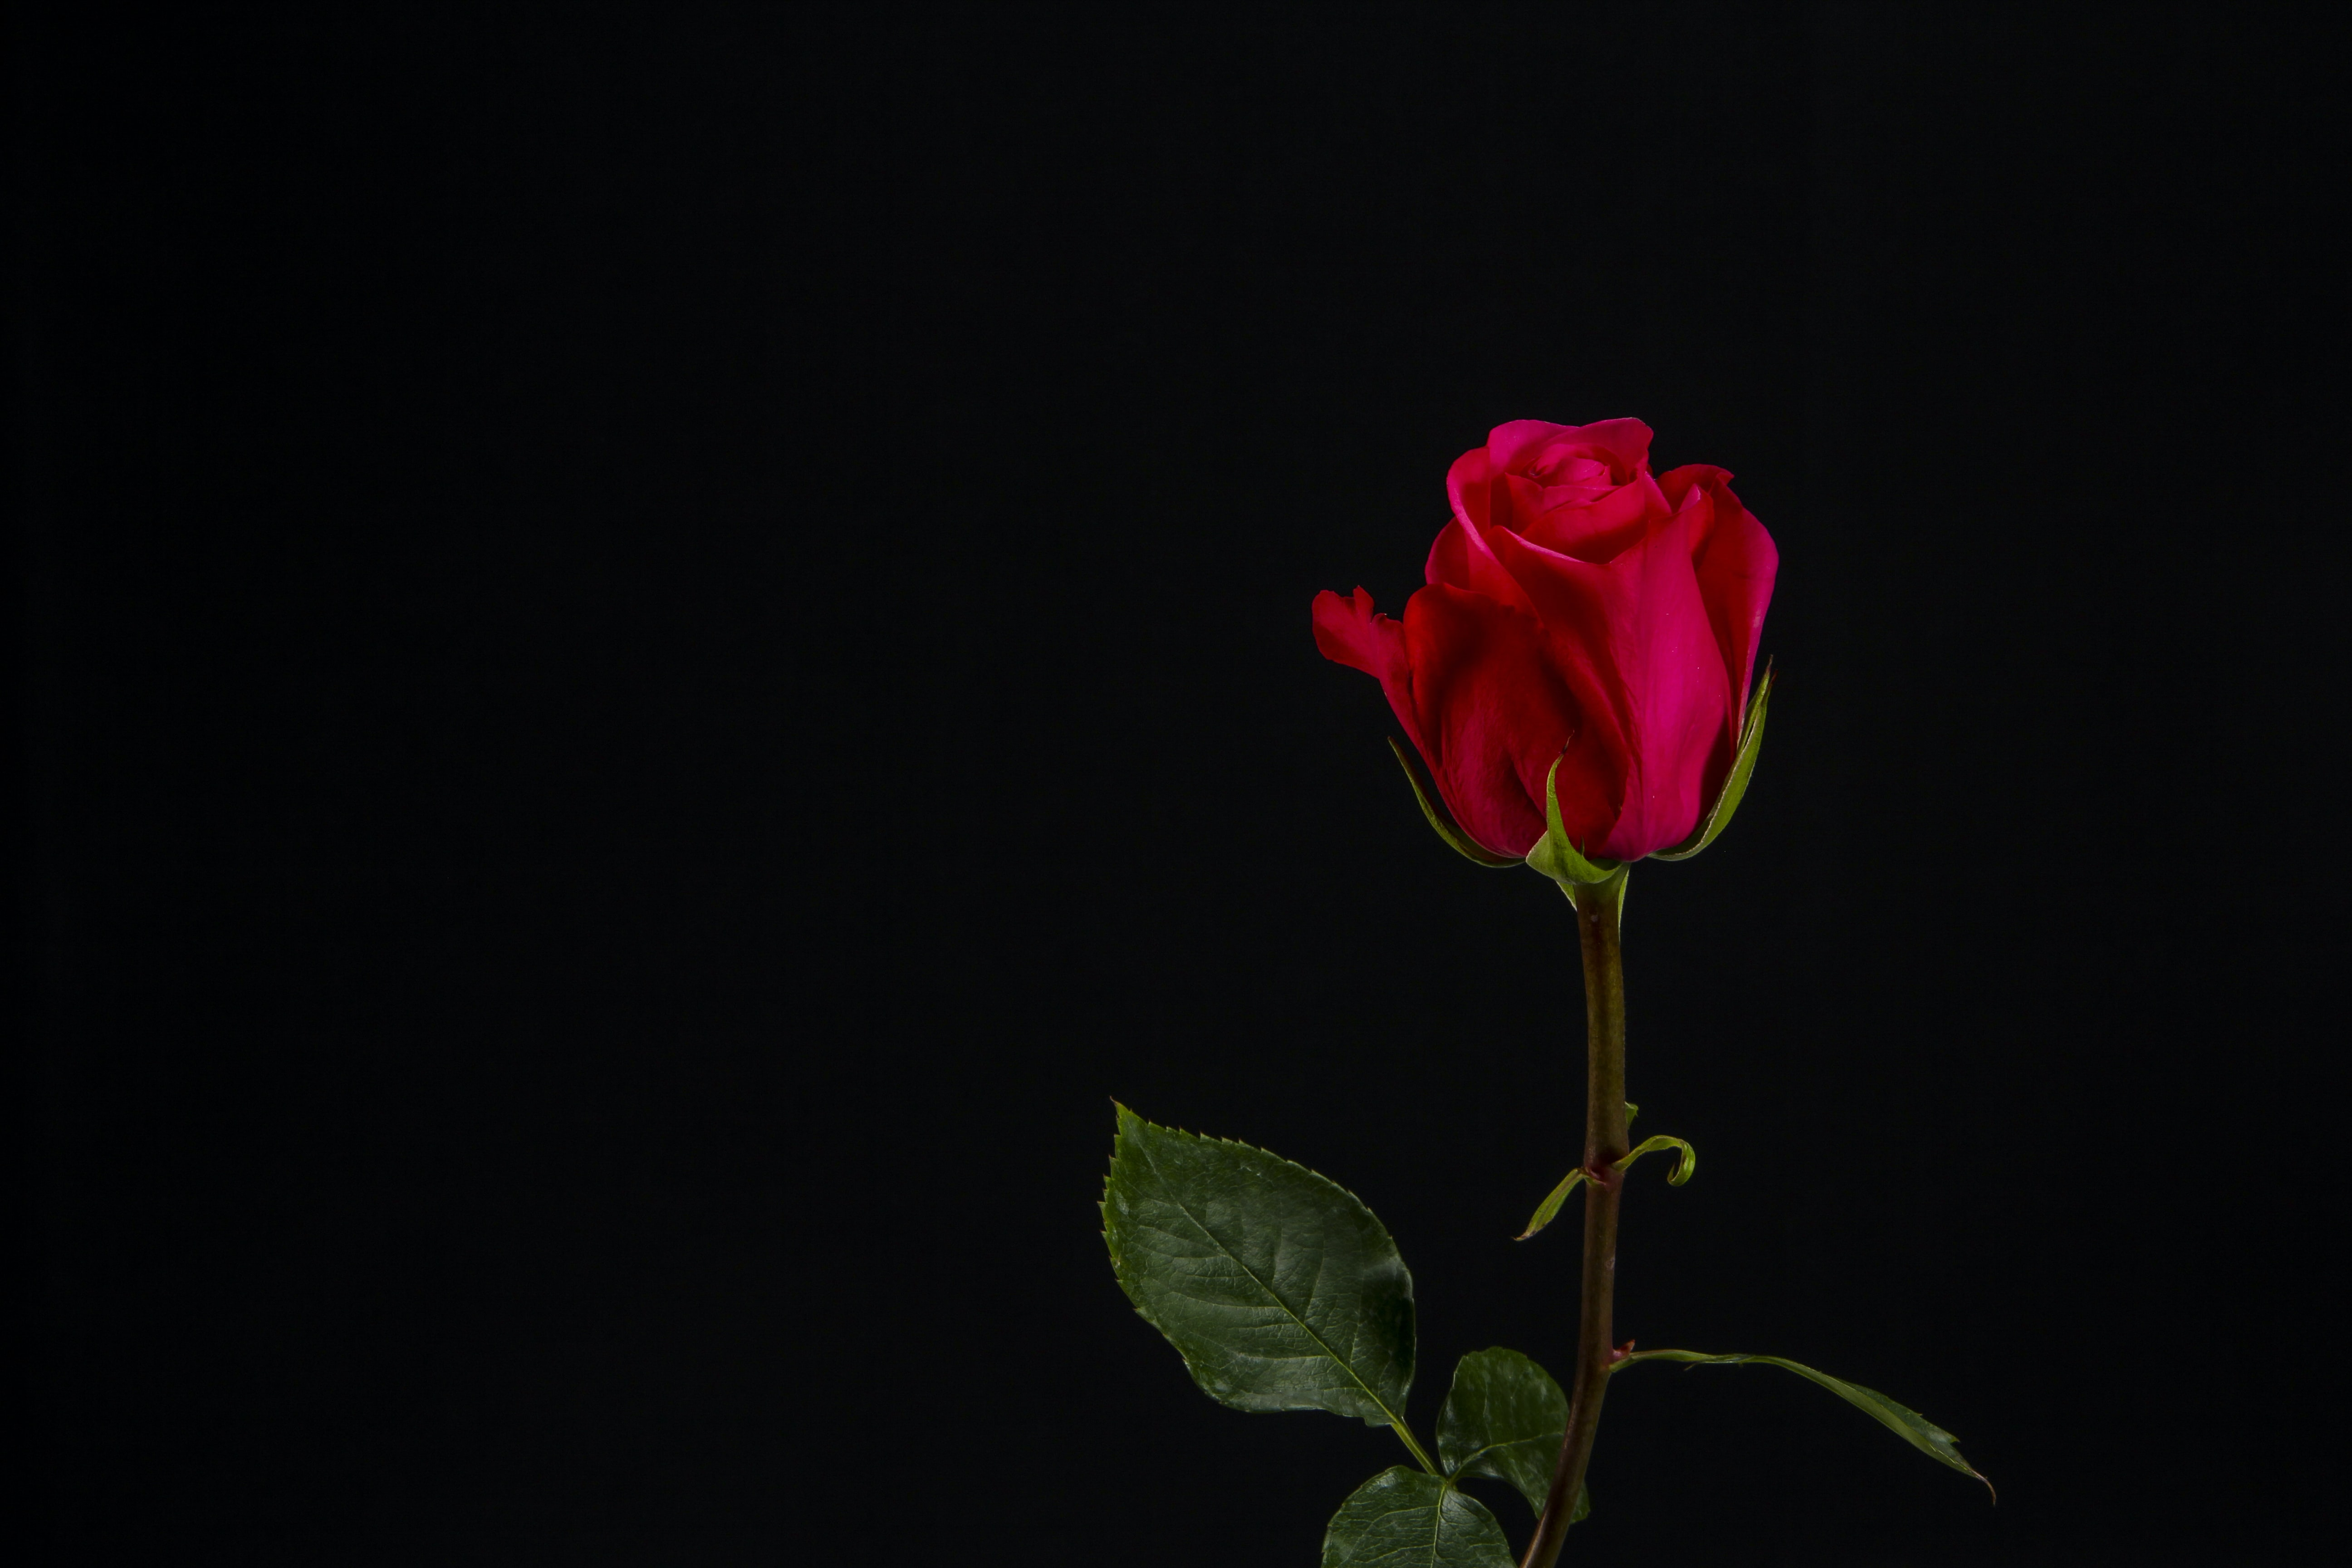 500 Flower Pictures Hd Download Free Images On Unsplash